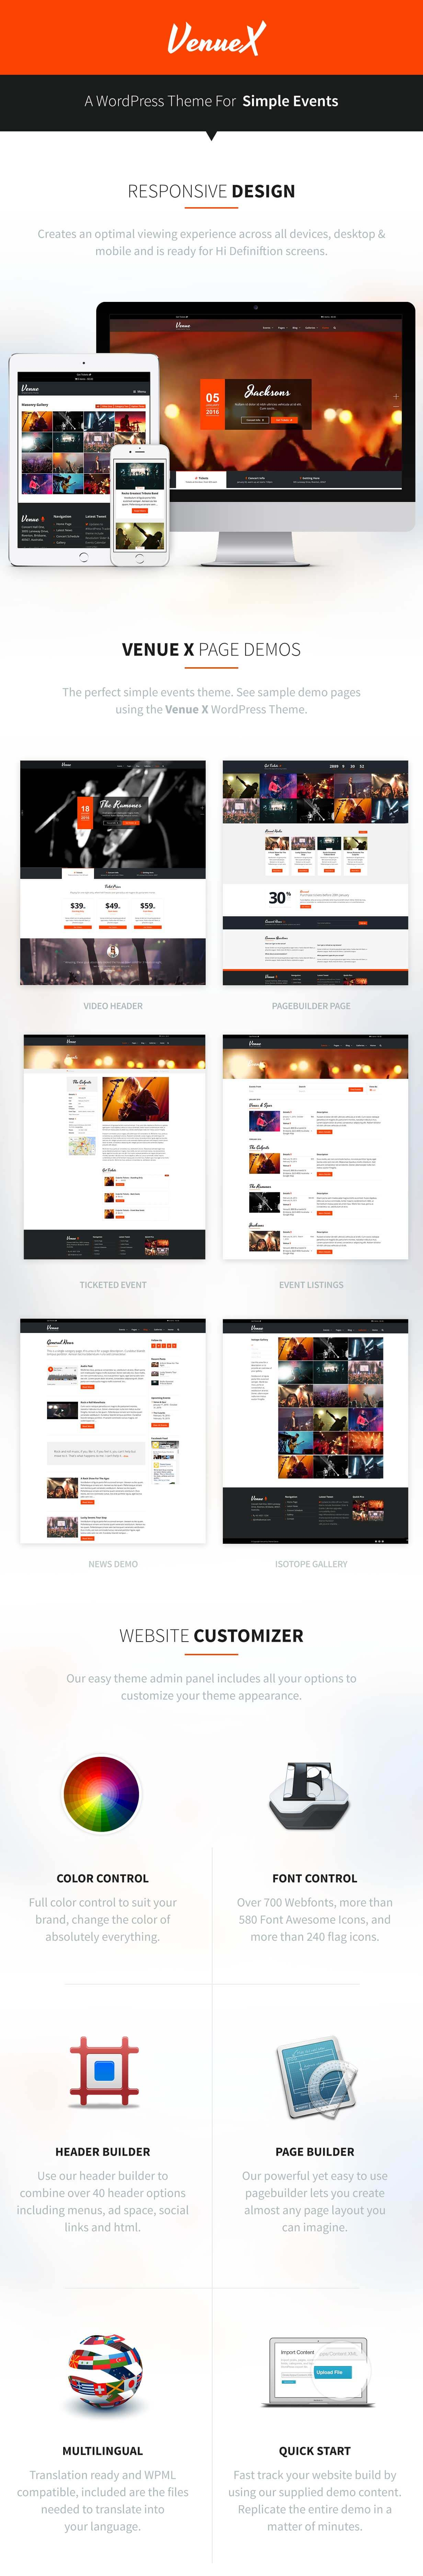 Venue X WordPress by Theme Canon